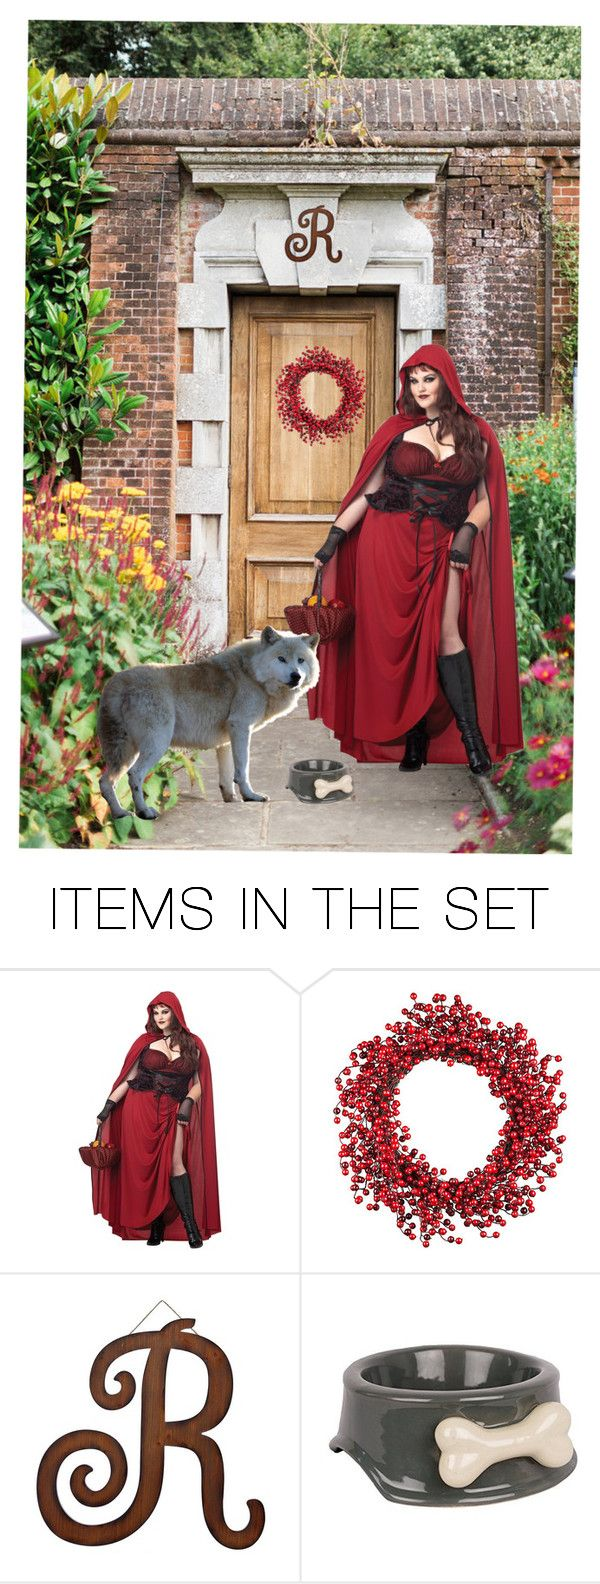 """""""A GIRL AND HER PET"""" by agordon9369 ❤ liked on Polyvore featuring art, cosplay, RedRidingHood and TAMEDBEAST"""